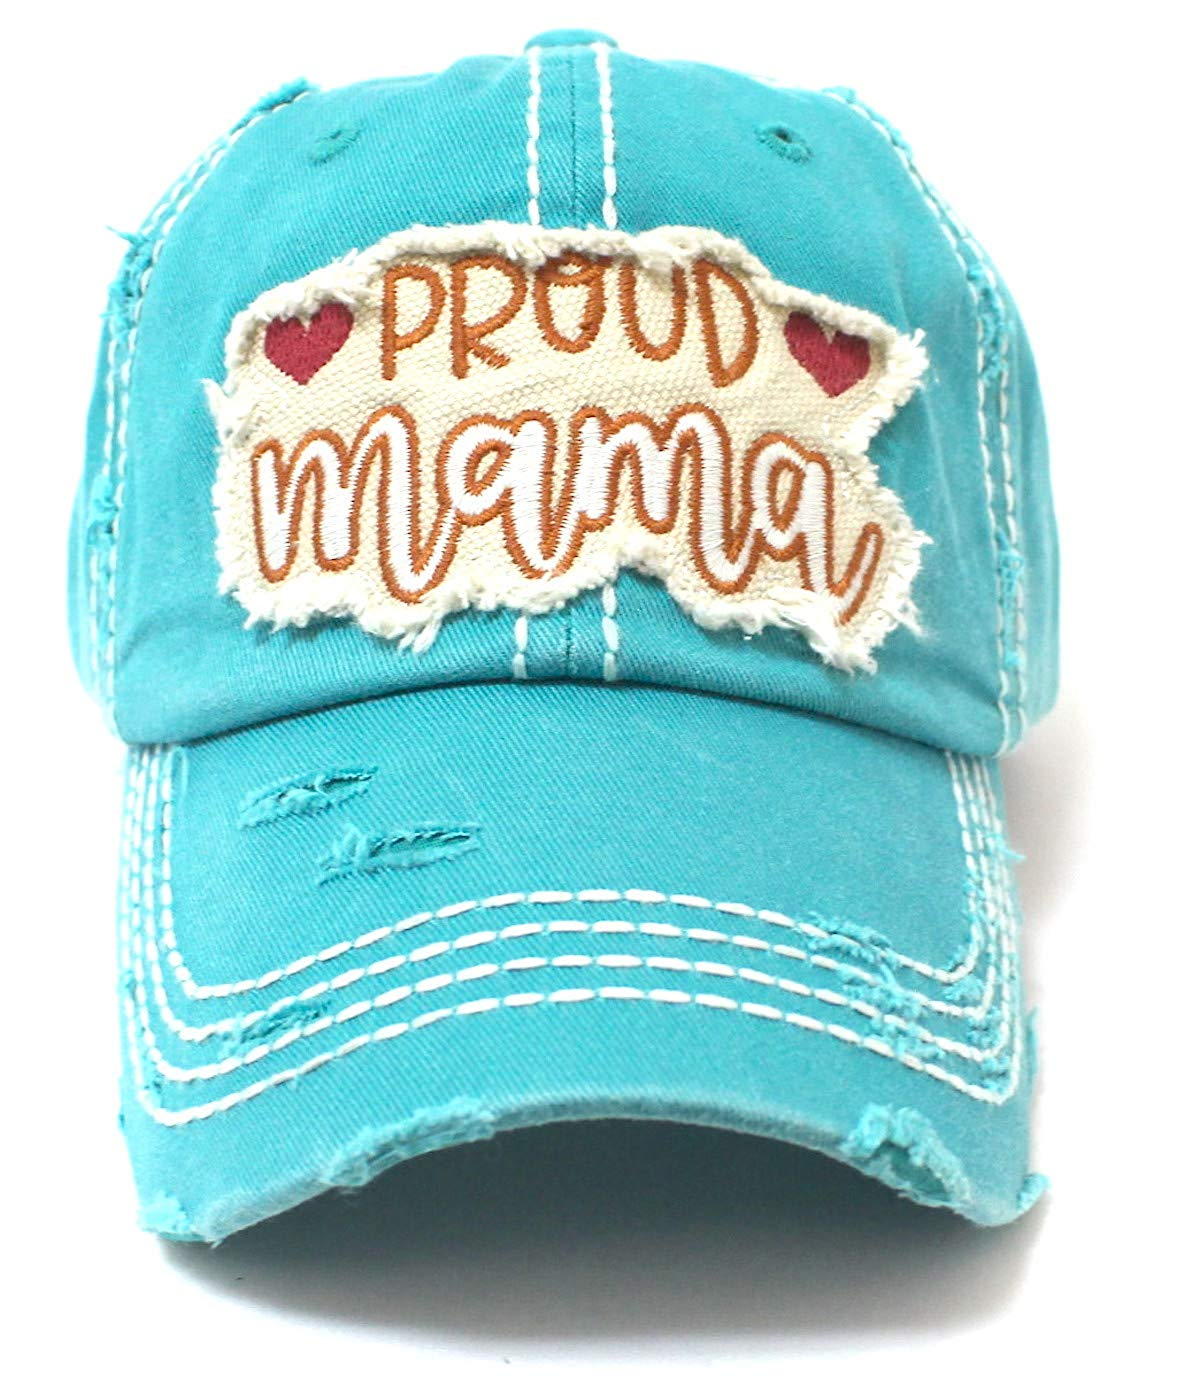 "Turquoise""PROUD mama"" Patch Embroidery Vintage Cap Accessory - Caps 'N Vintage"